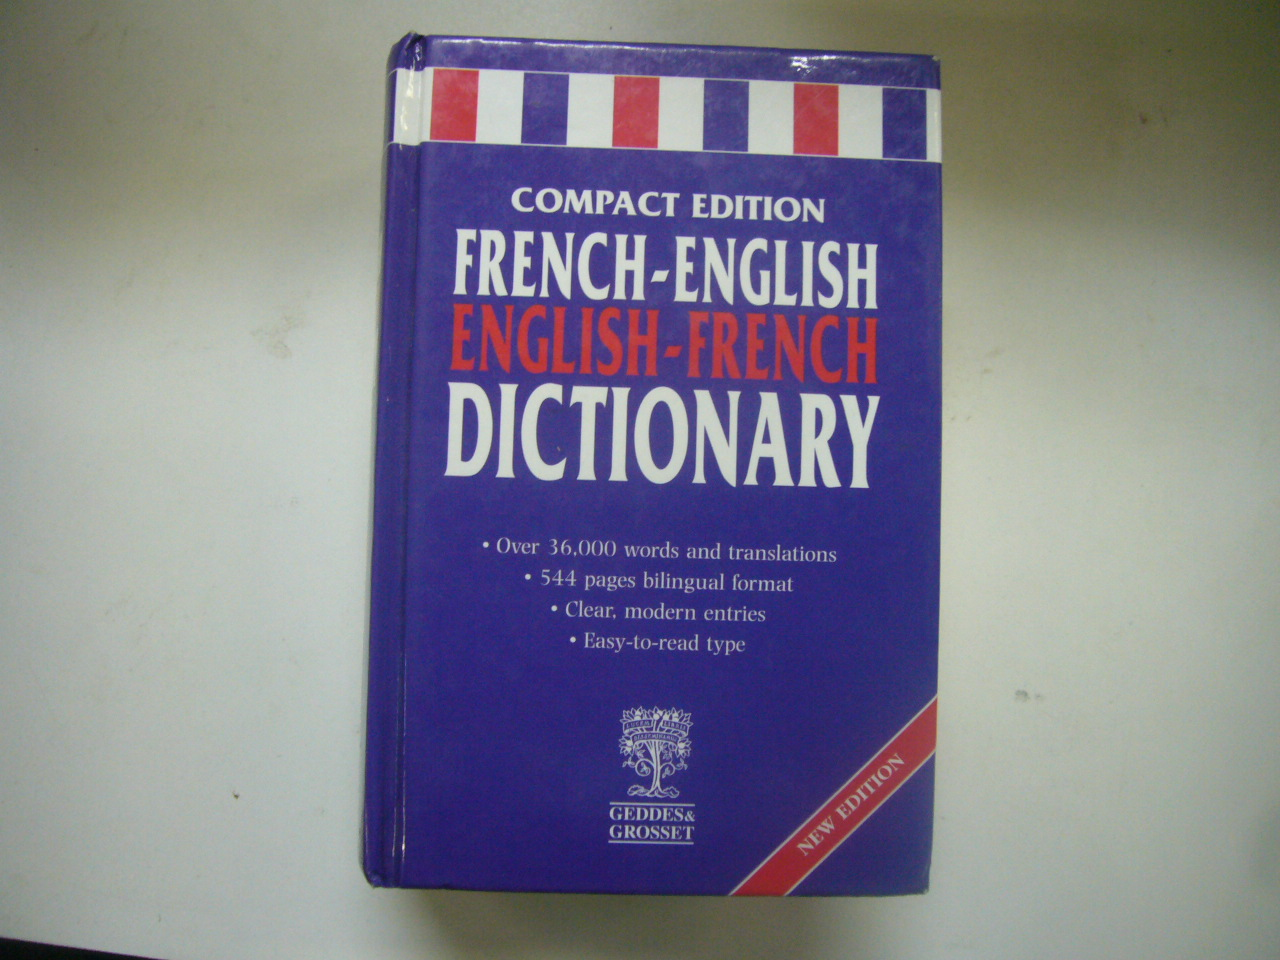 French-English English-French Dictionary (Compact Edition)